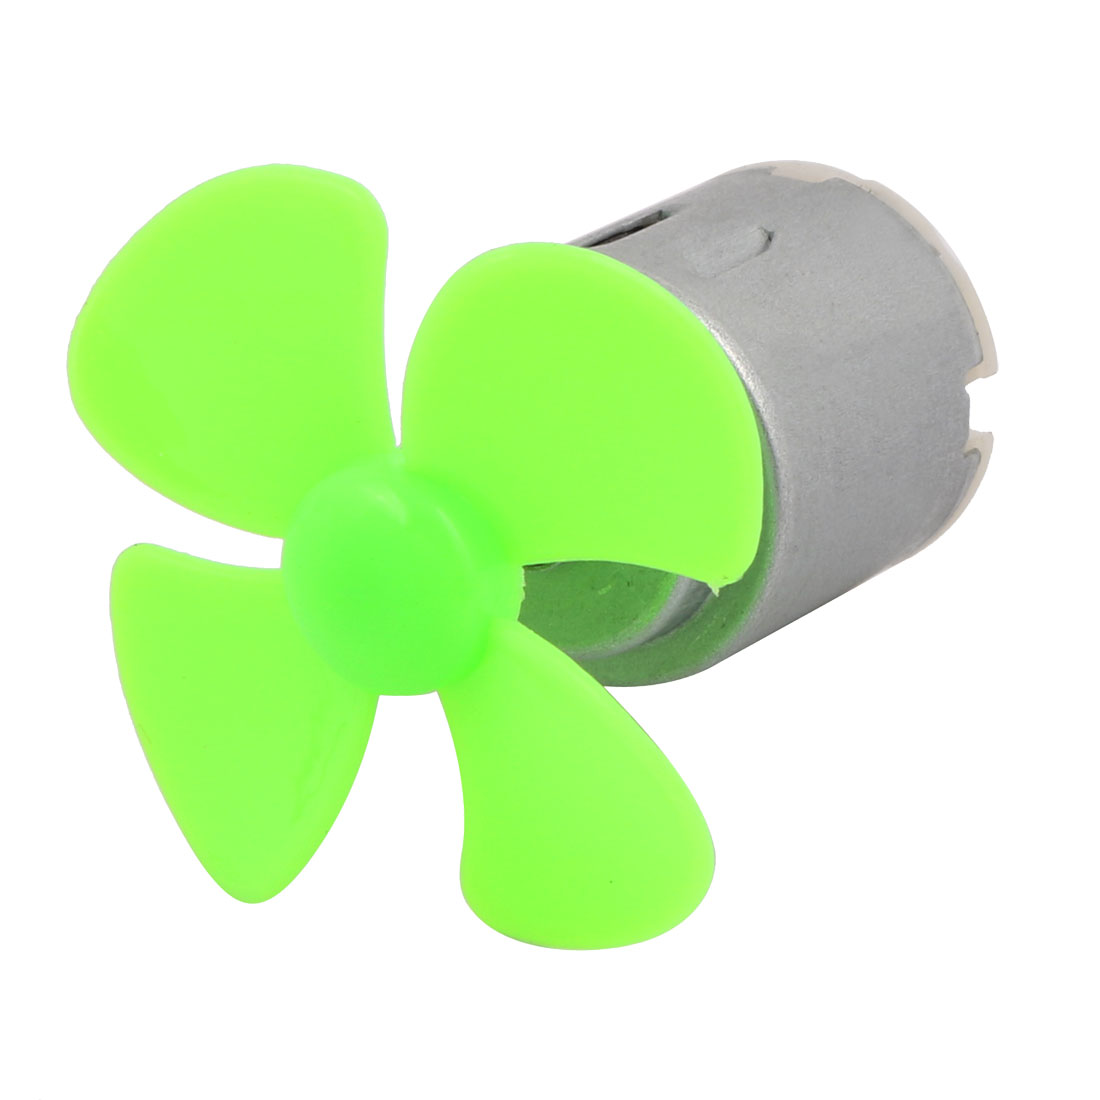 DC 3V 0.13A 11000RPM Strong Force Motor 4 Vanes 40mm Green Propeller for RC Aircraft